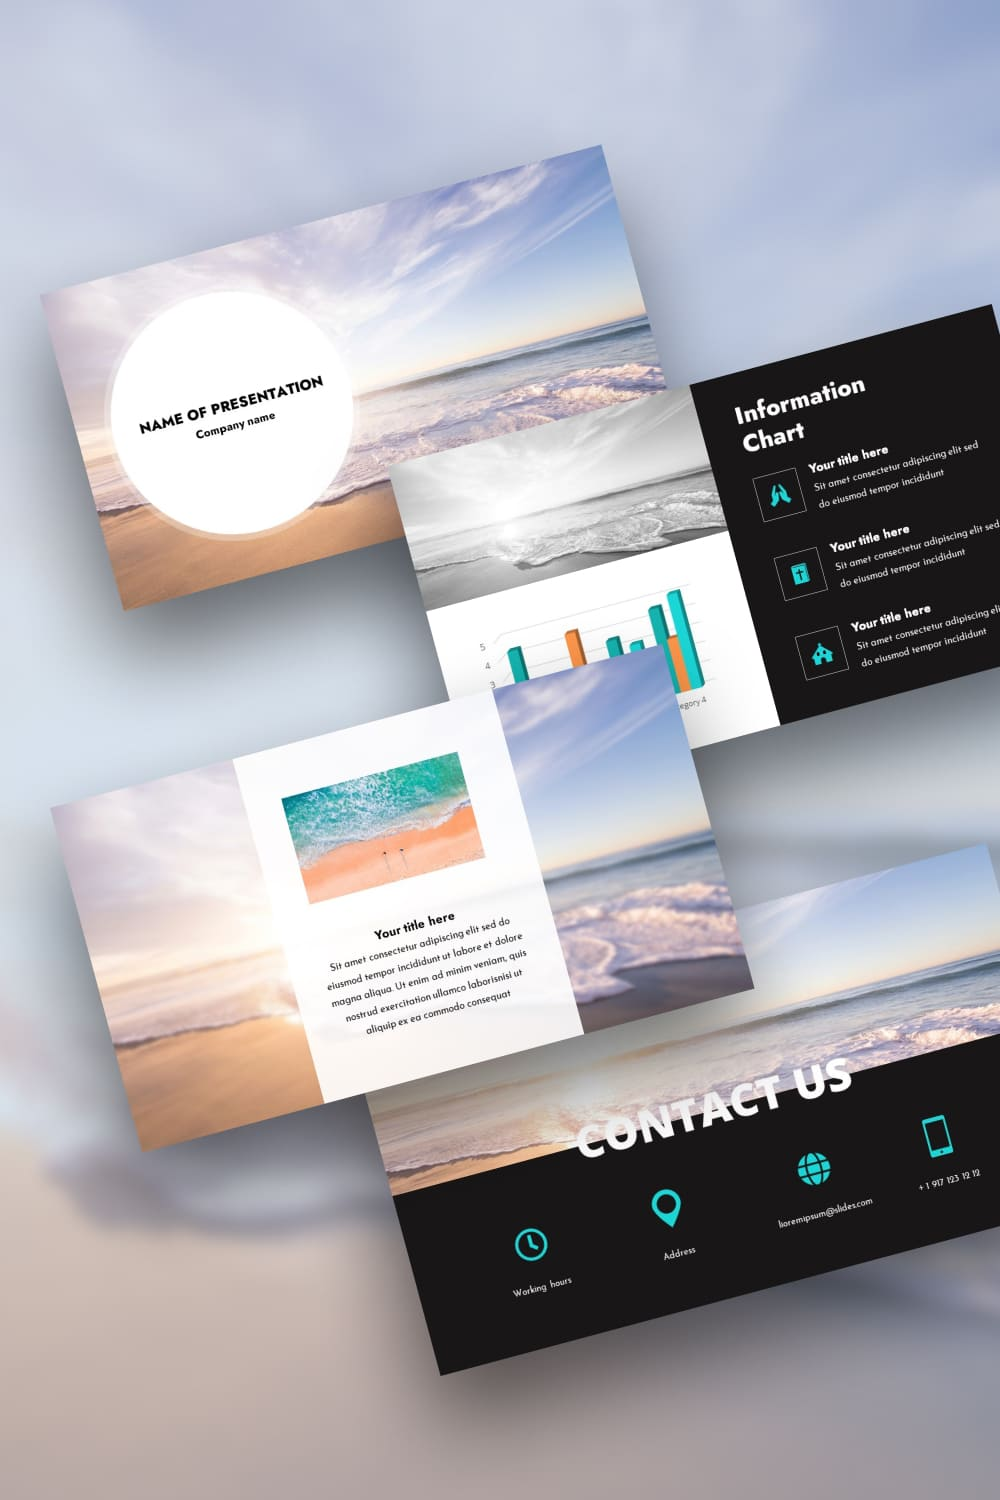 Where there is a lot of space, there is a lot of attention. There is a place for dreams and desires. With this template, your presentation will become an inspiration for others.